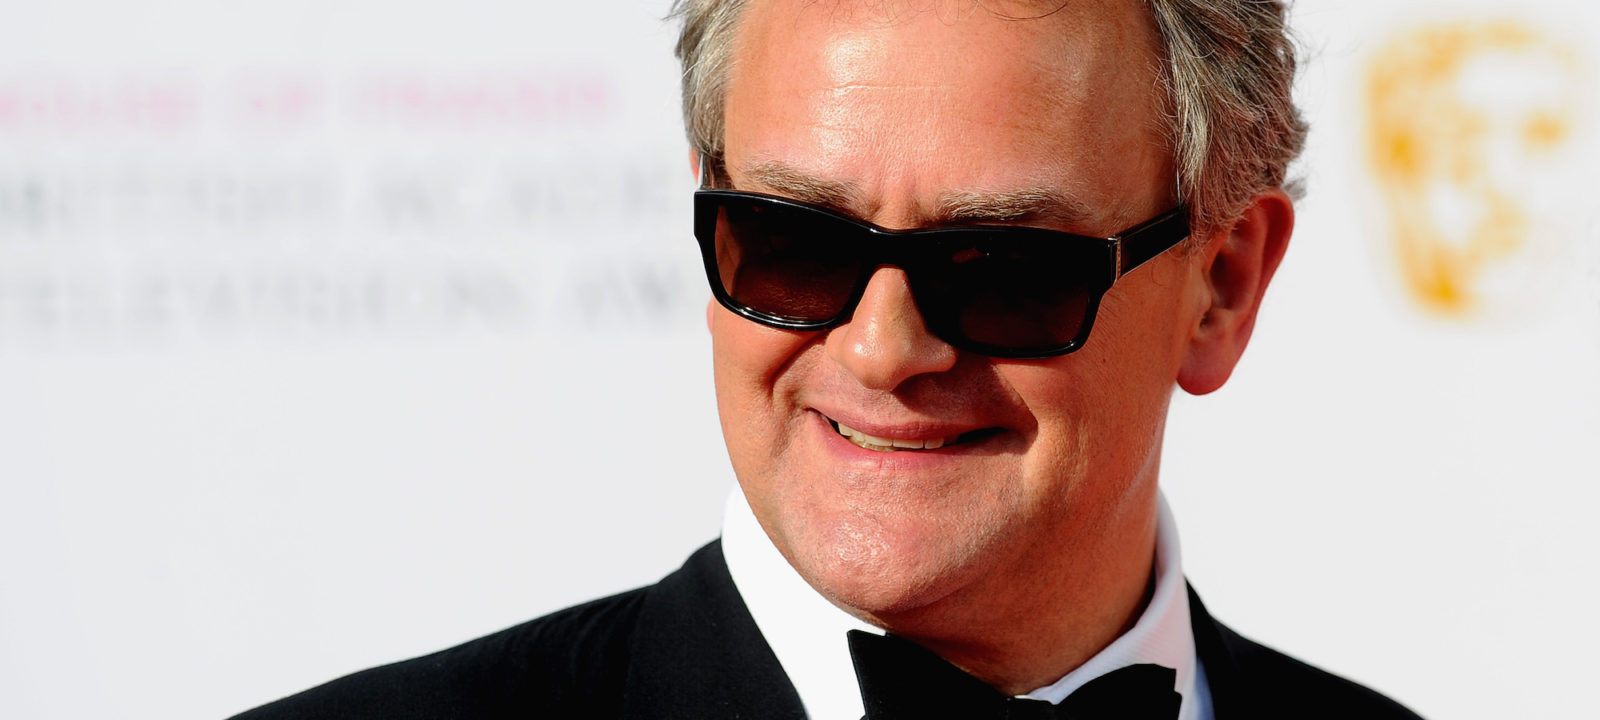 Hugh Bonneville attends the House Of Fraser British Academy Television Awards 2016  at the Royal Festival Hall on May 8, 2016 in London, England.